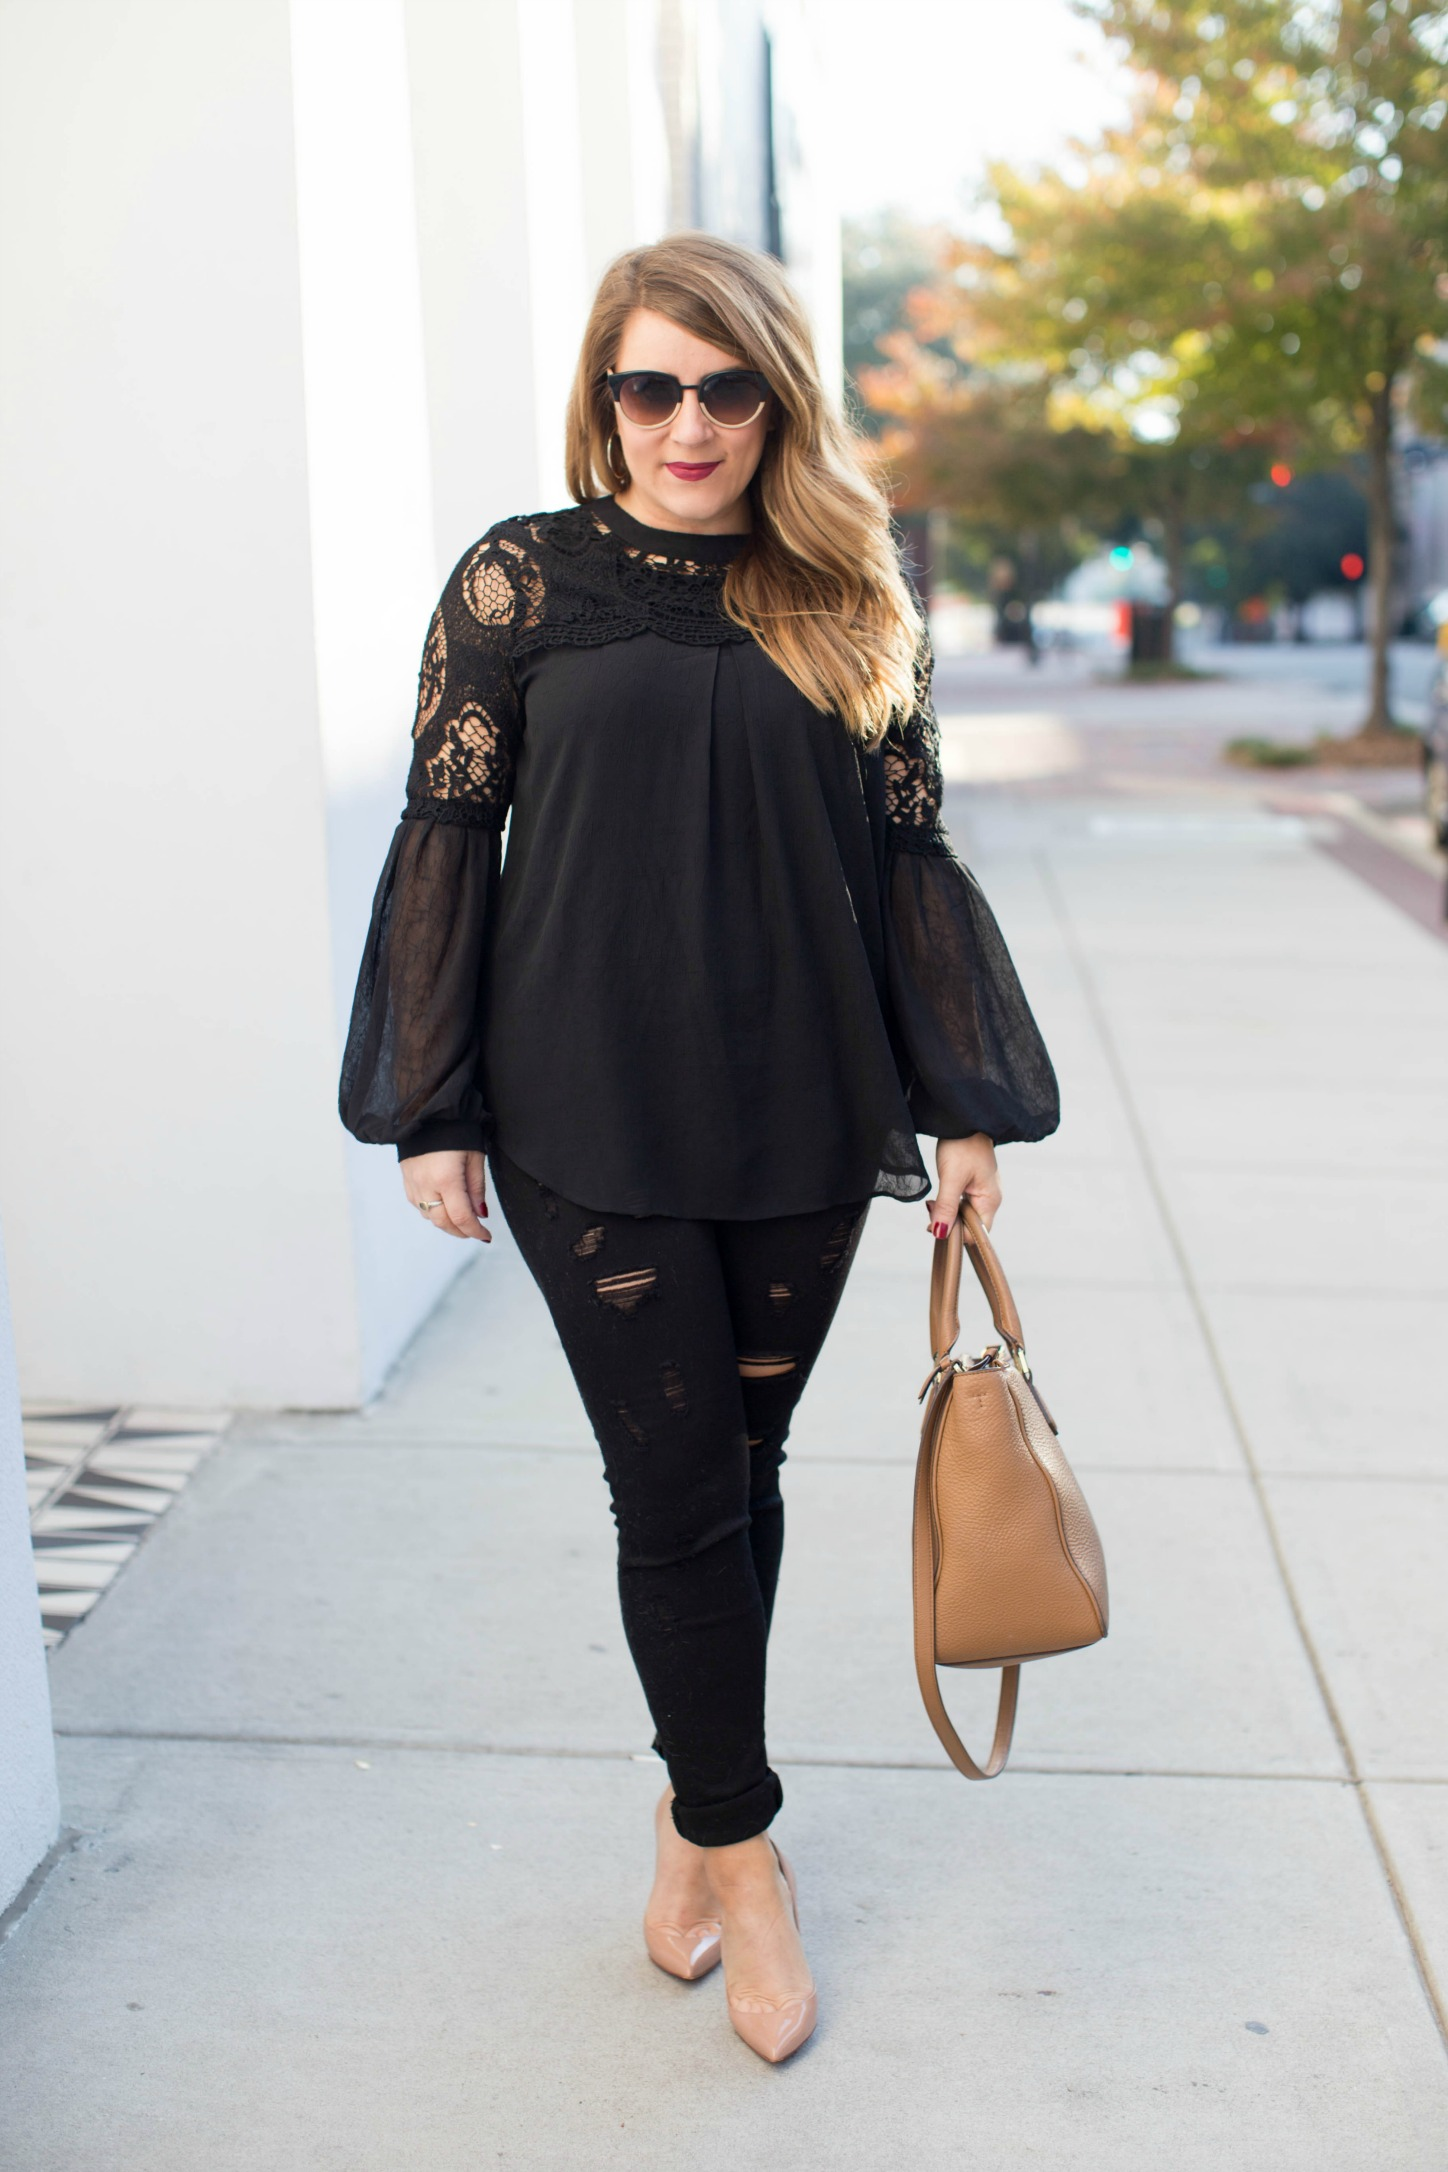 blakc-bell-sleeve-top-for-fall